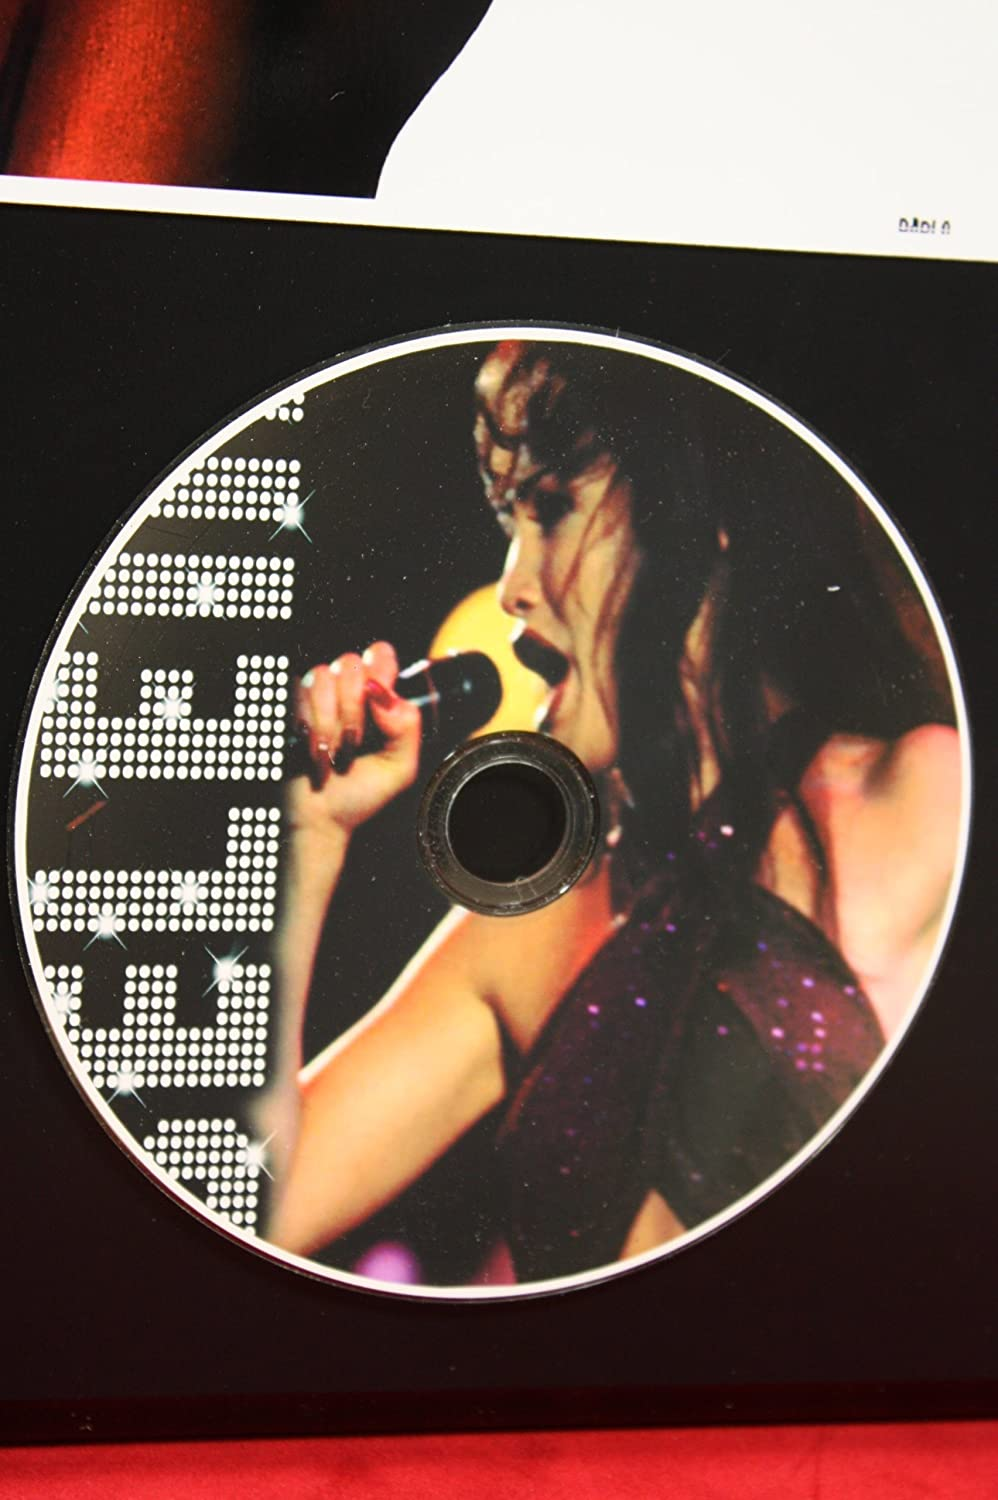 Selena Limited Edition Picture Disc CD Rare Collectible Music Display стоимость